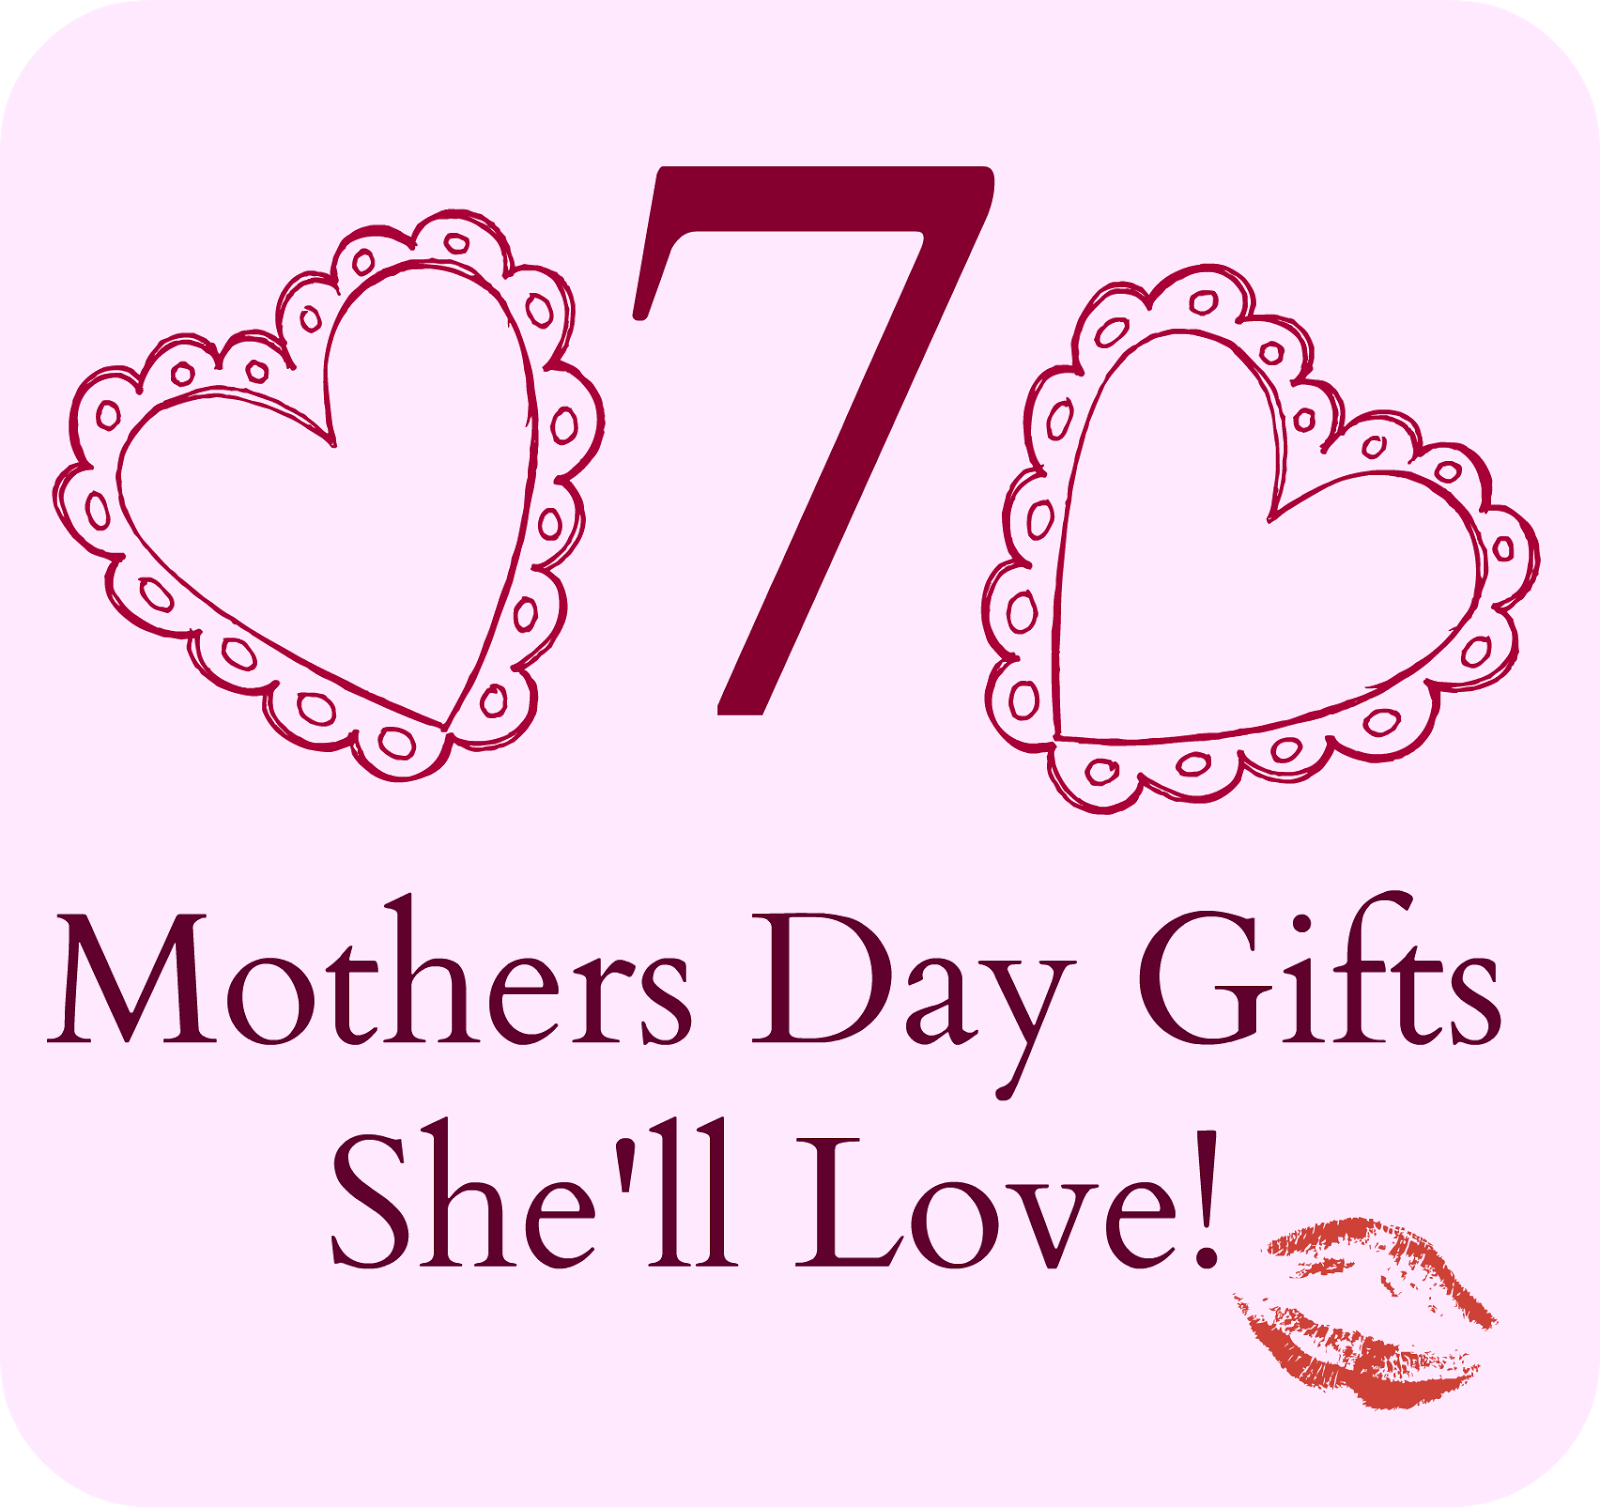 Home Maid Simple: 7 Mothers Day Gifts She'll Love!